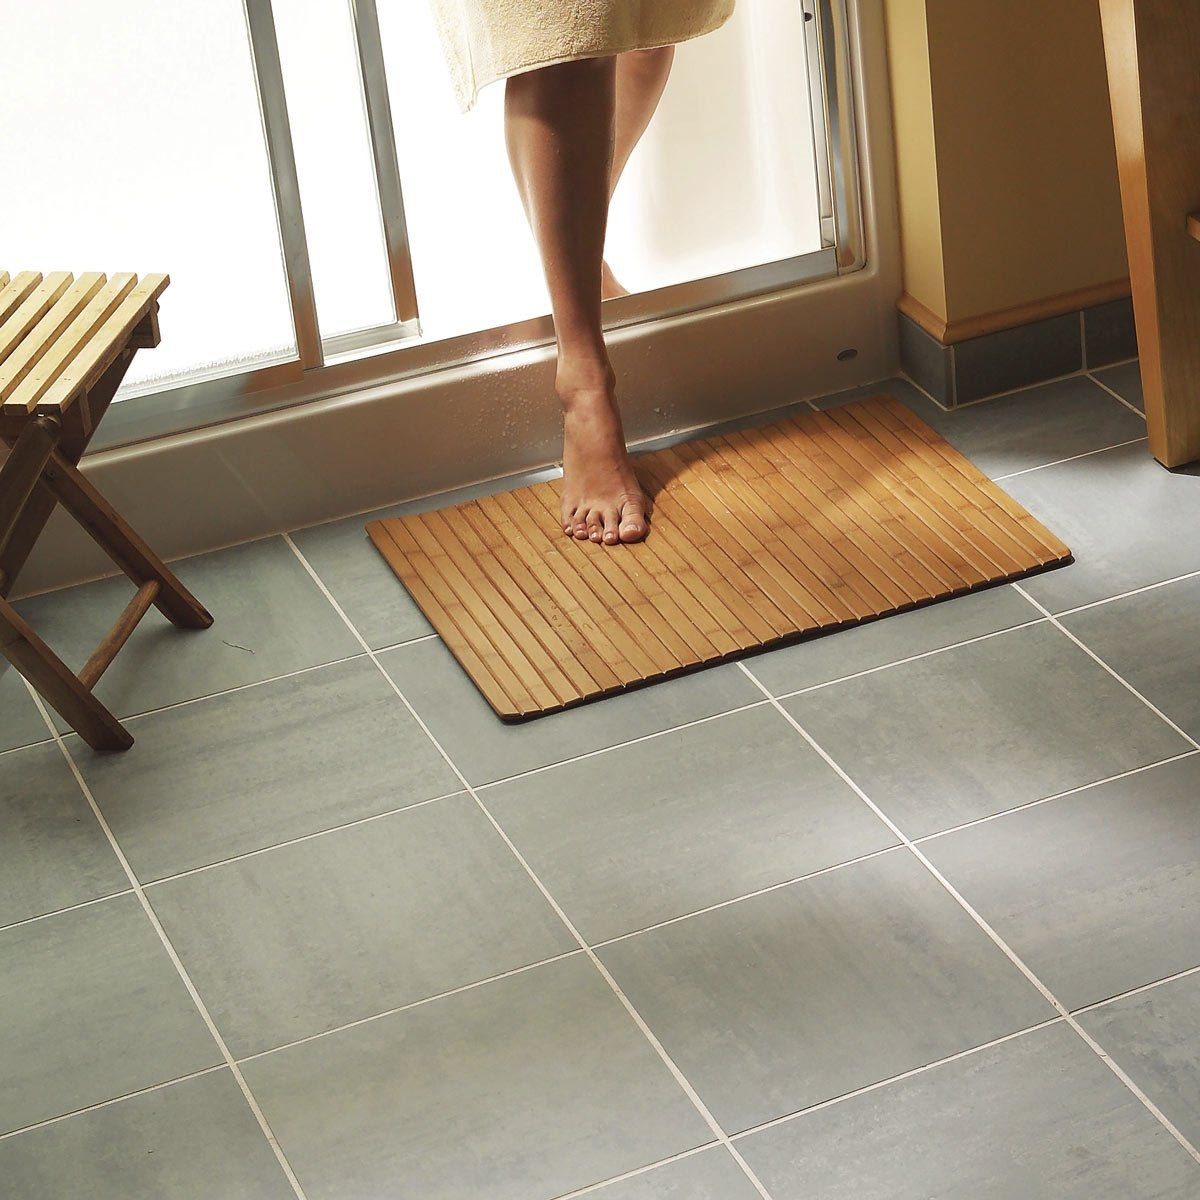 How To Install Ceramic Tile Floor In The Bathroom Tile Installation Ceramic Floor Tile Tile Floor